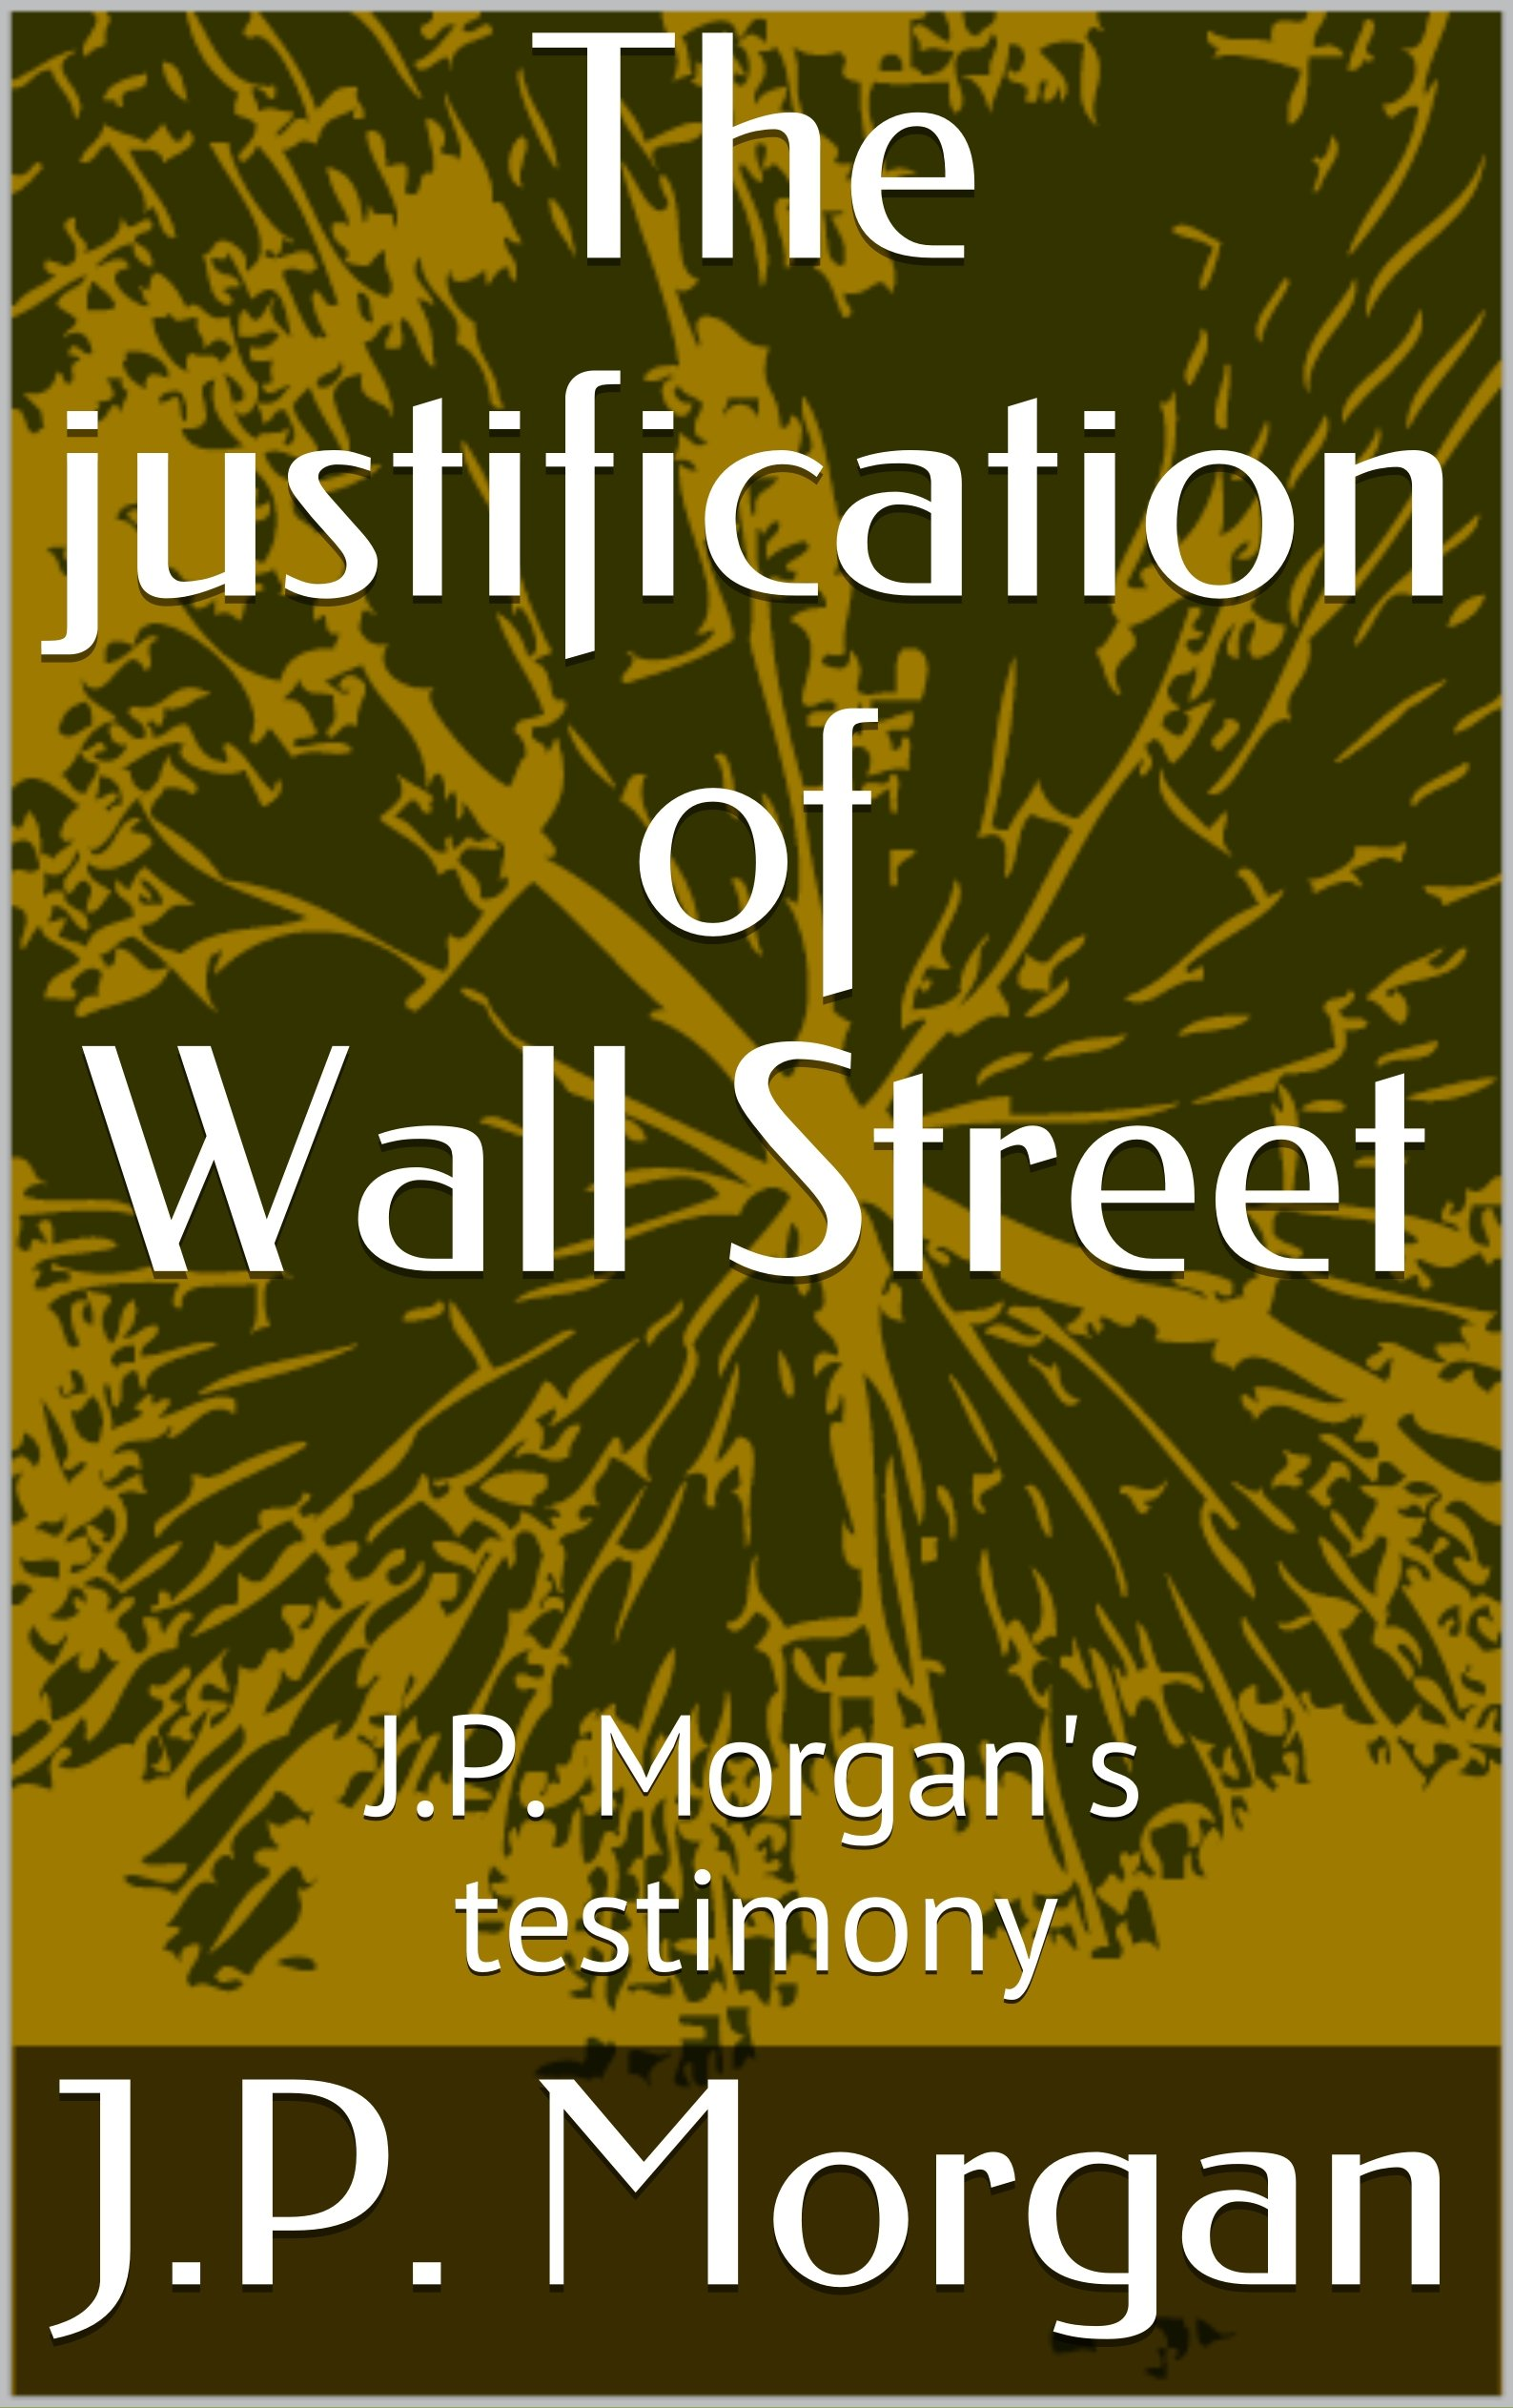 The justification of Wall Street: J.P. Morgan's testimony